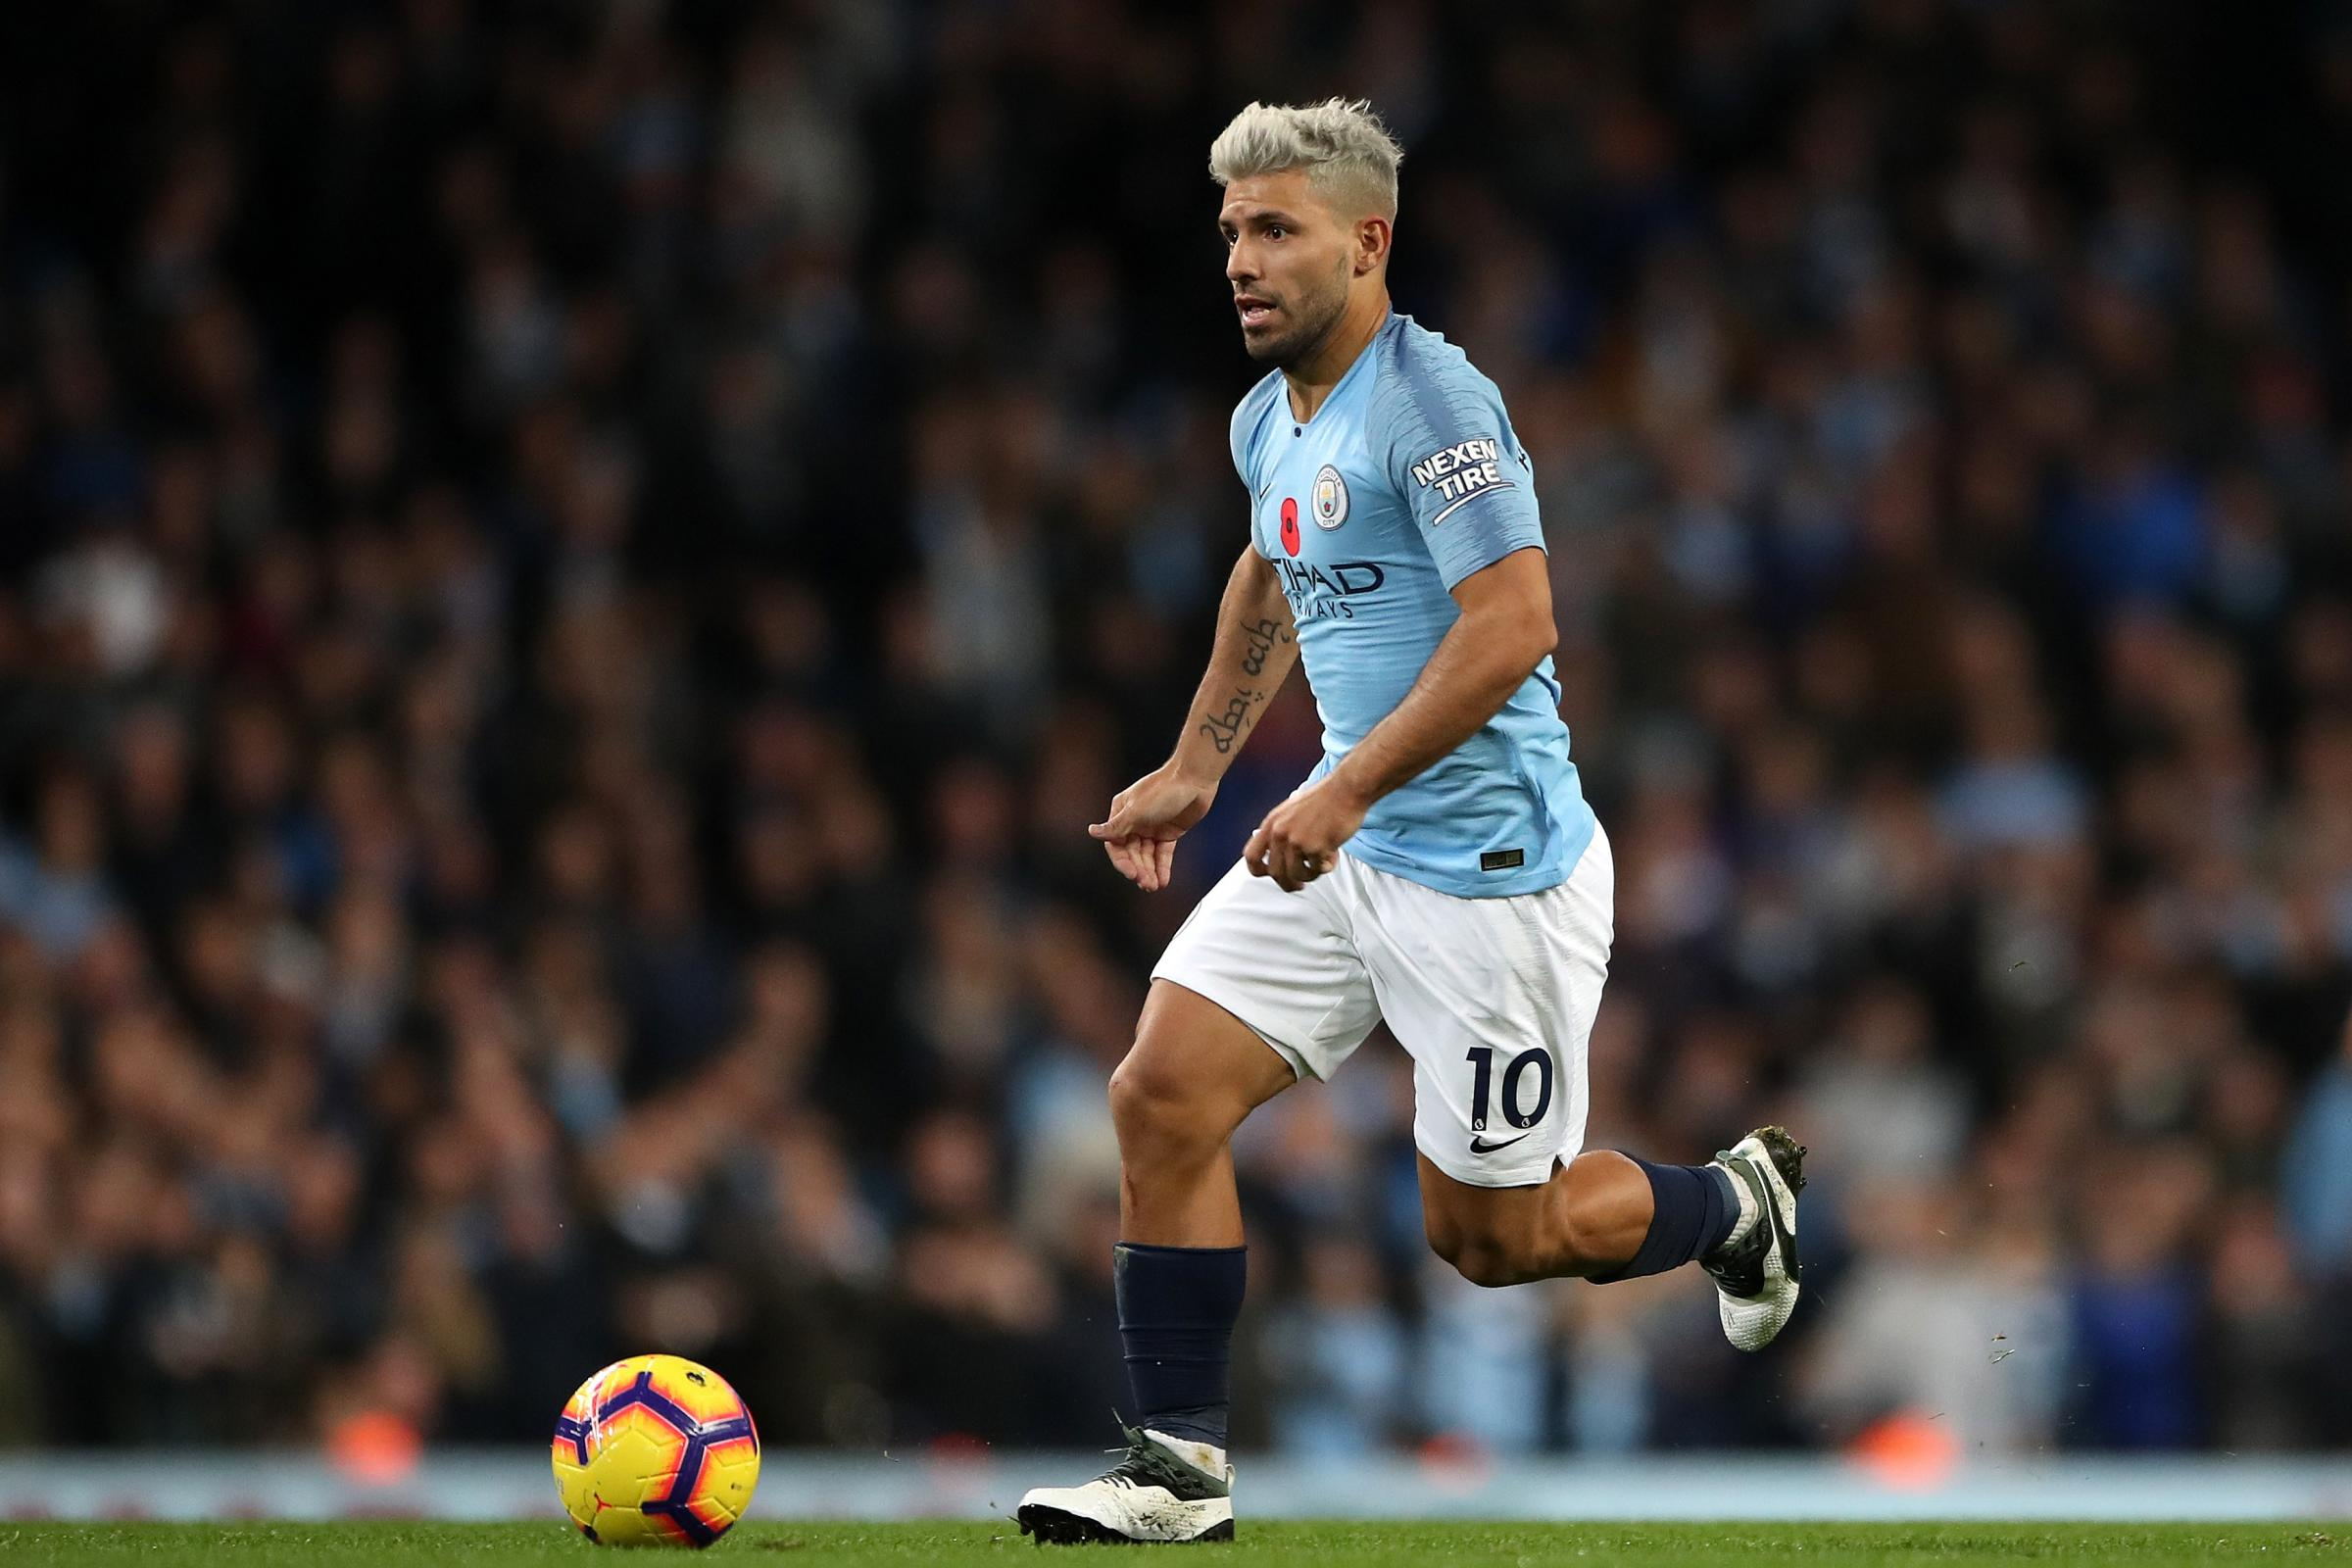 Sergio Aguero will miss Manchester City's trip to Chelsea